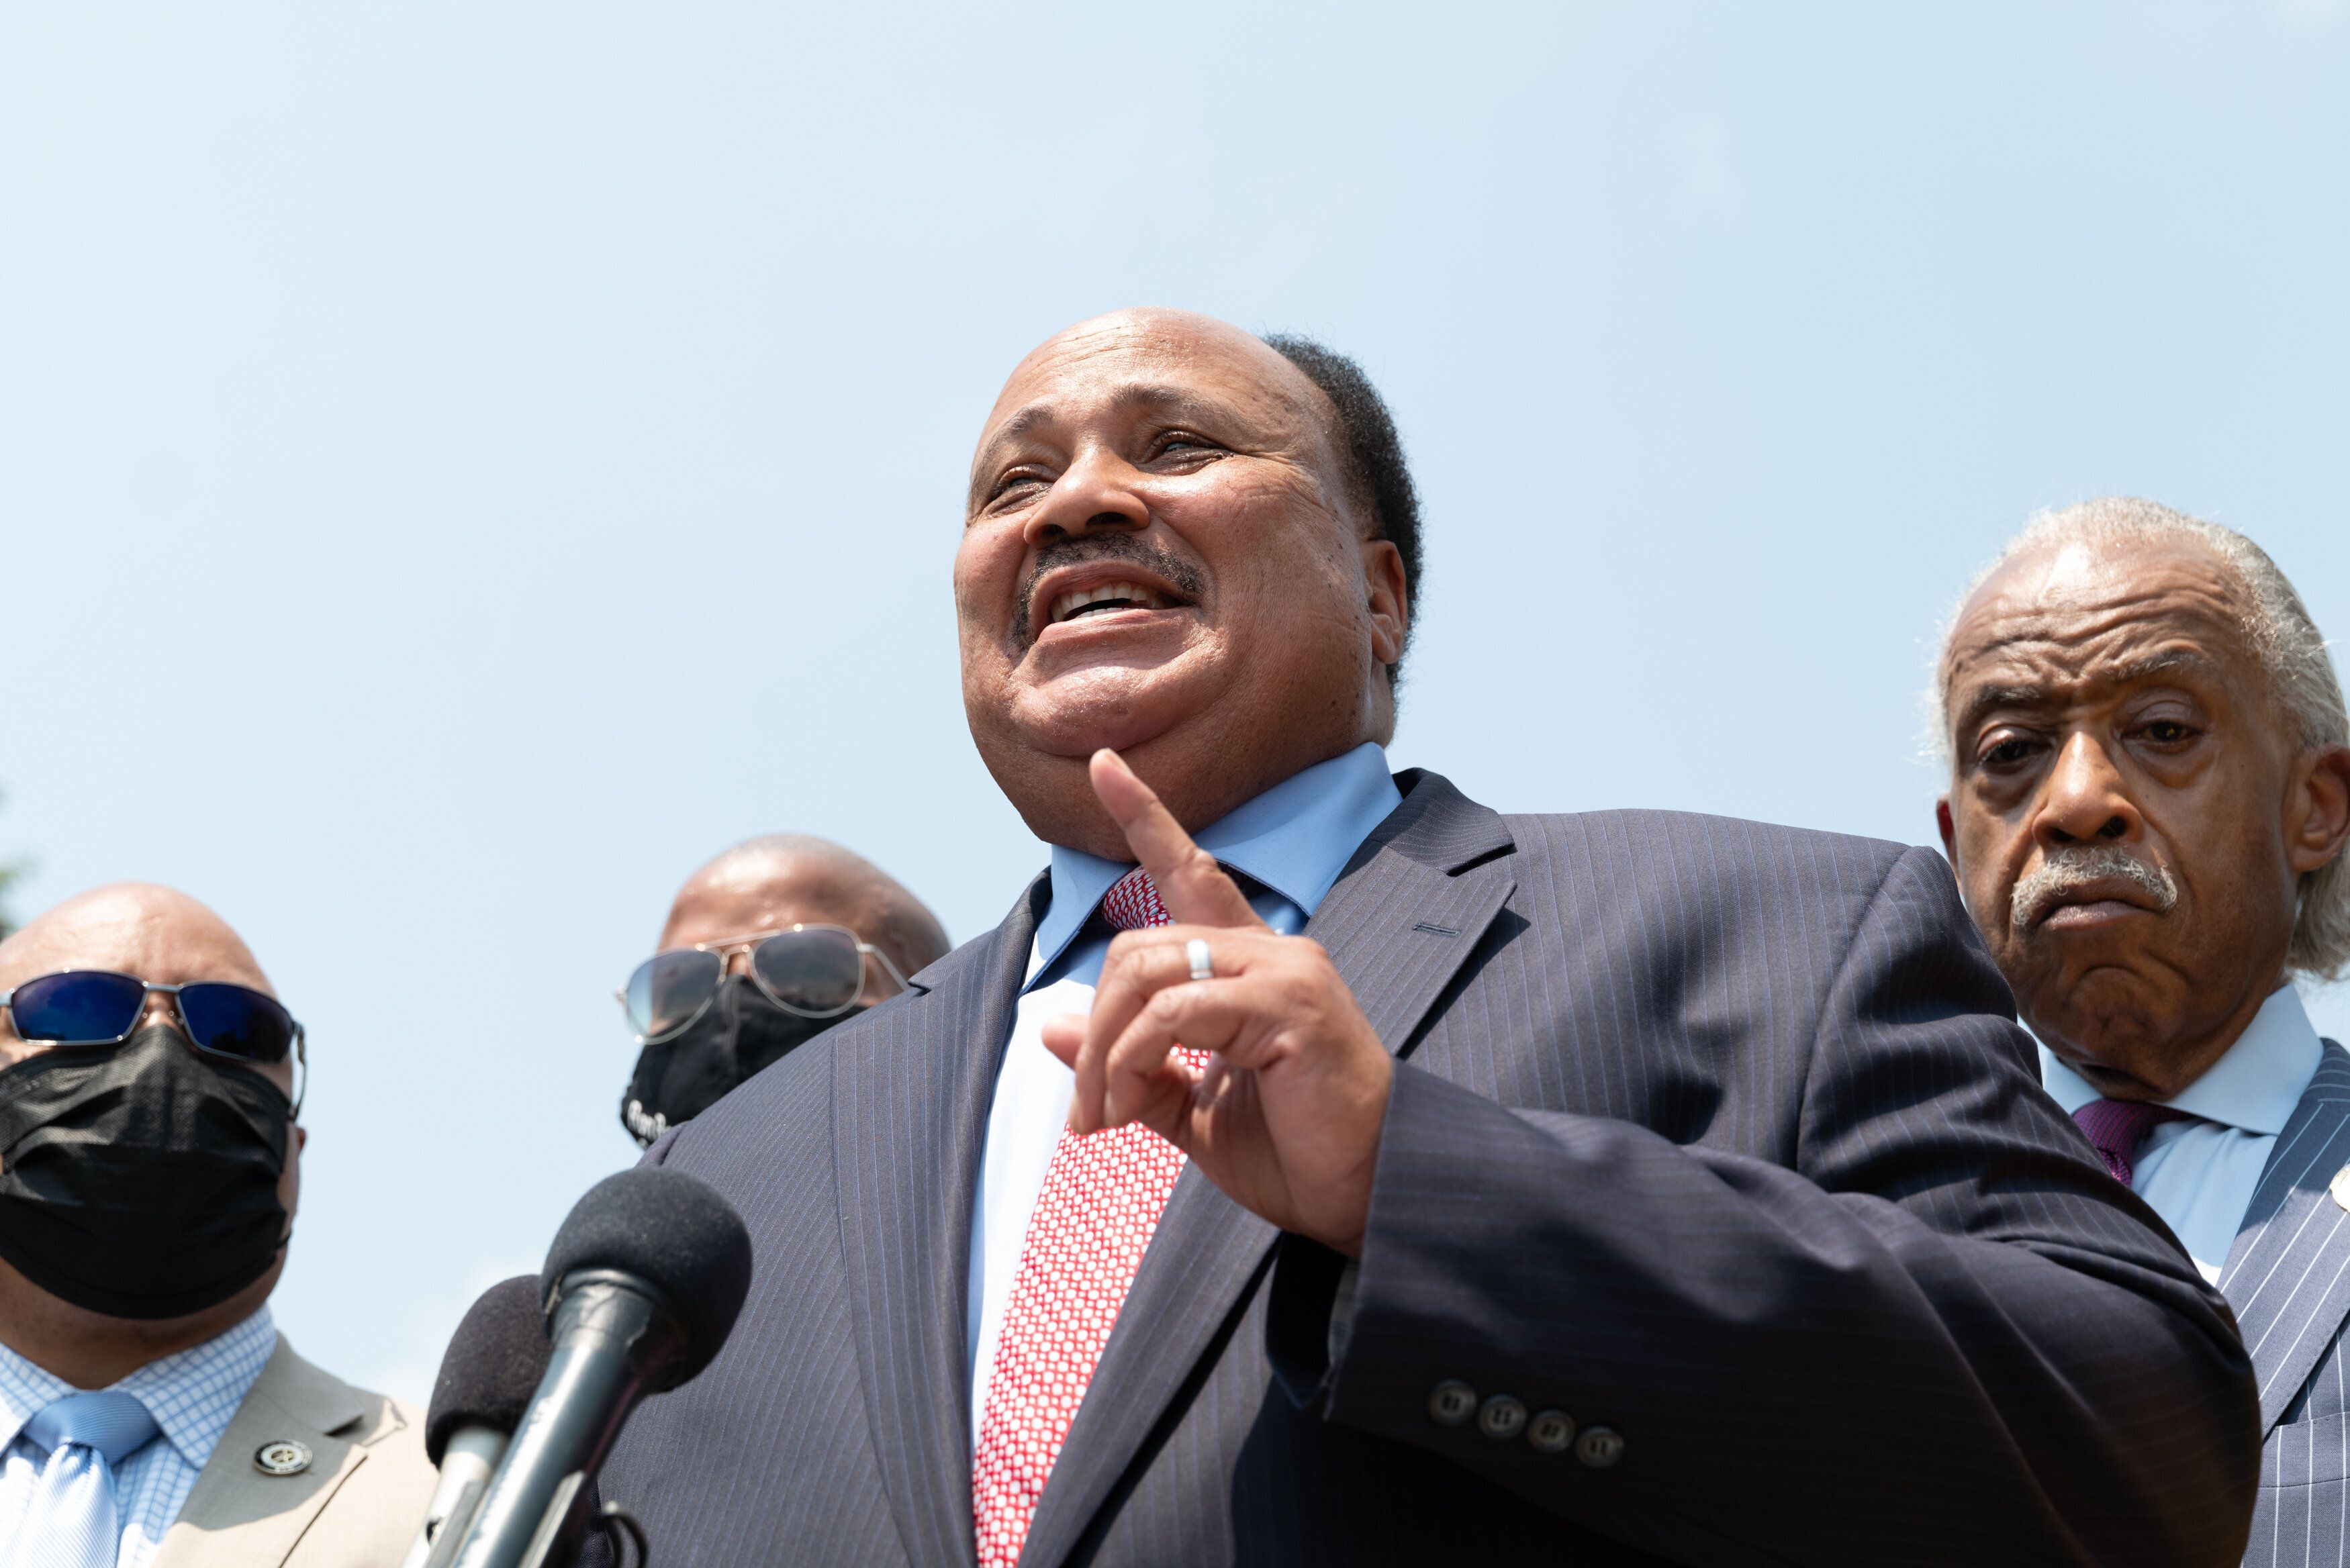 Martin Luther King III co-organized the March On For Voting Rights, a rally taking place in Washington, D.C., on Saturday, th